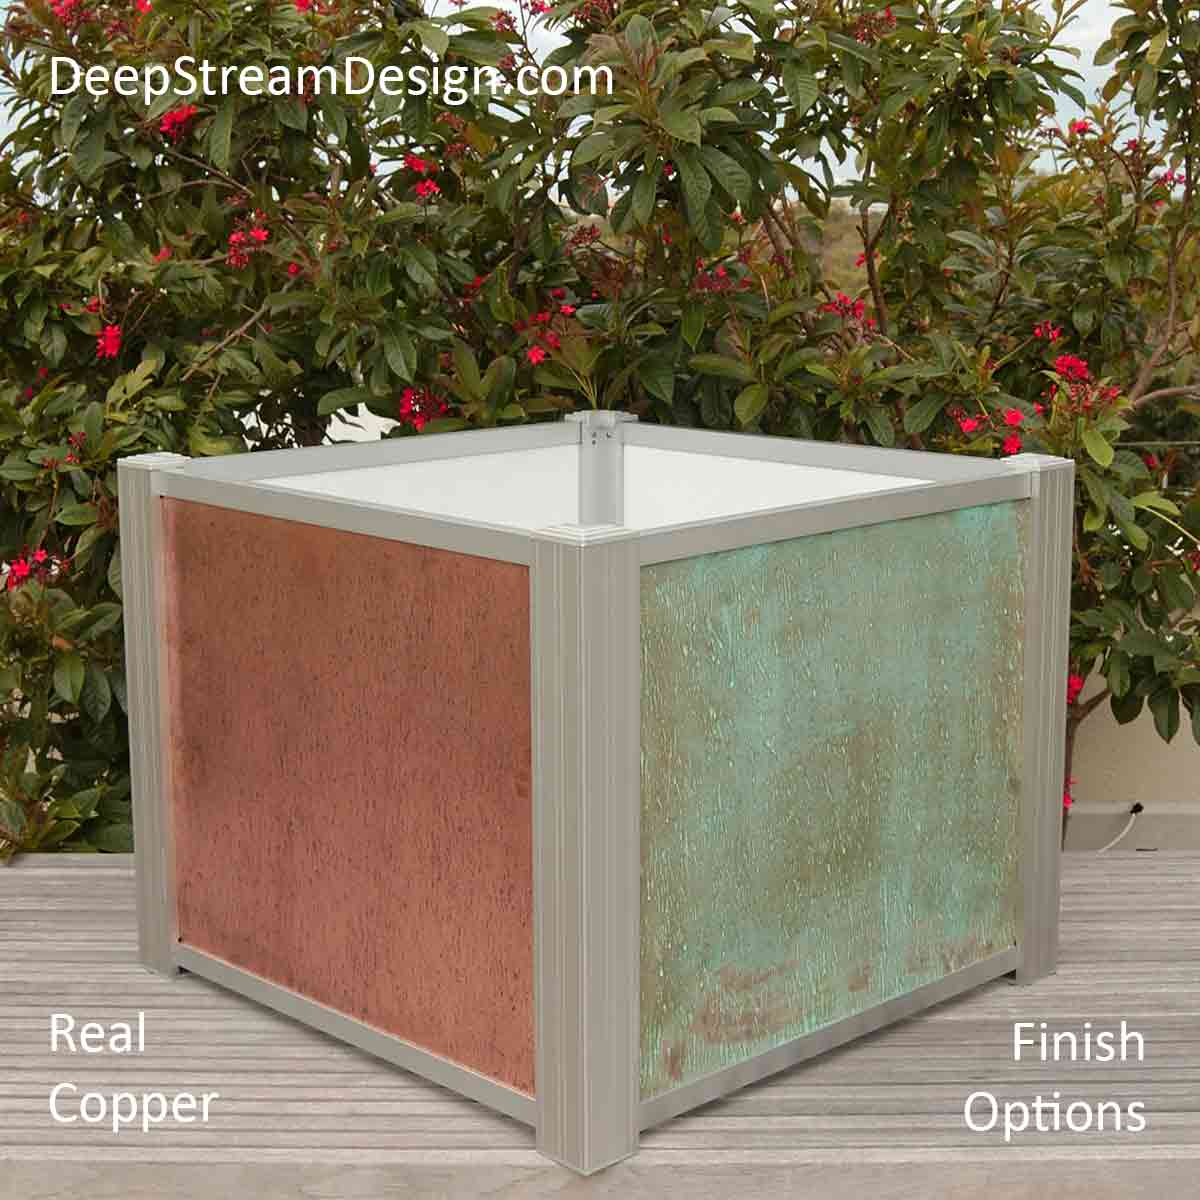 A Modern Planter, without its separate planter liner, created using natural copper panels held by DeepStream's Audubon aluminum frame system, which accepts any material with slide-in ease. Copper is perfect for indoor and outdoor use. The copper color is a natural finish, and the green verdigris finish often associated with aged copper is the result of chemicals applied in our workshop. Given modern air quality, copper will age to a brown finish.